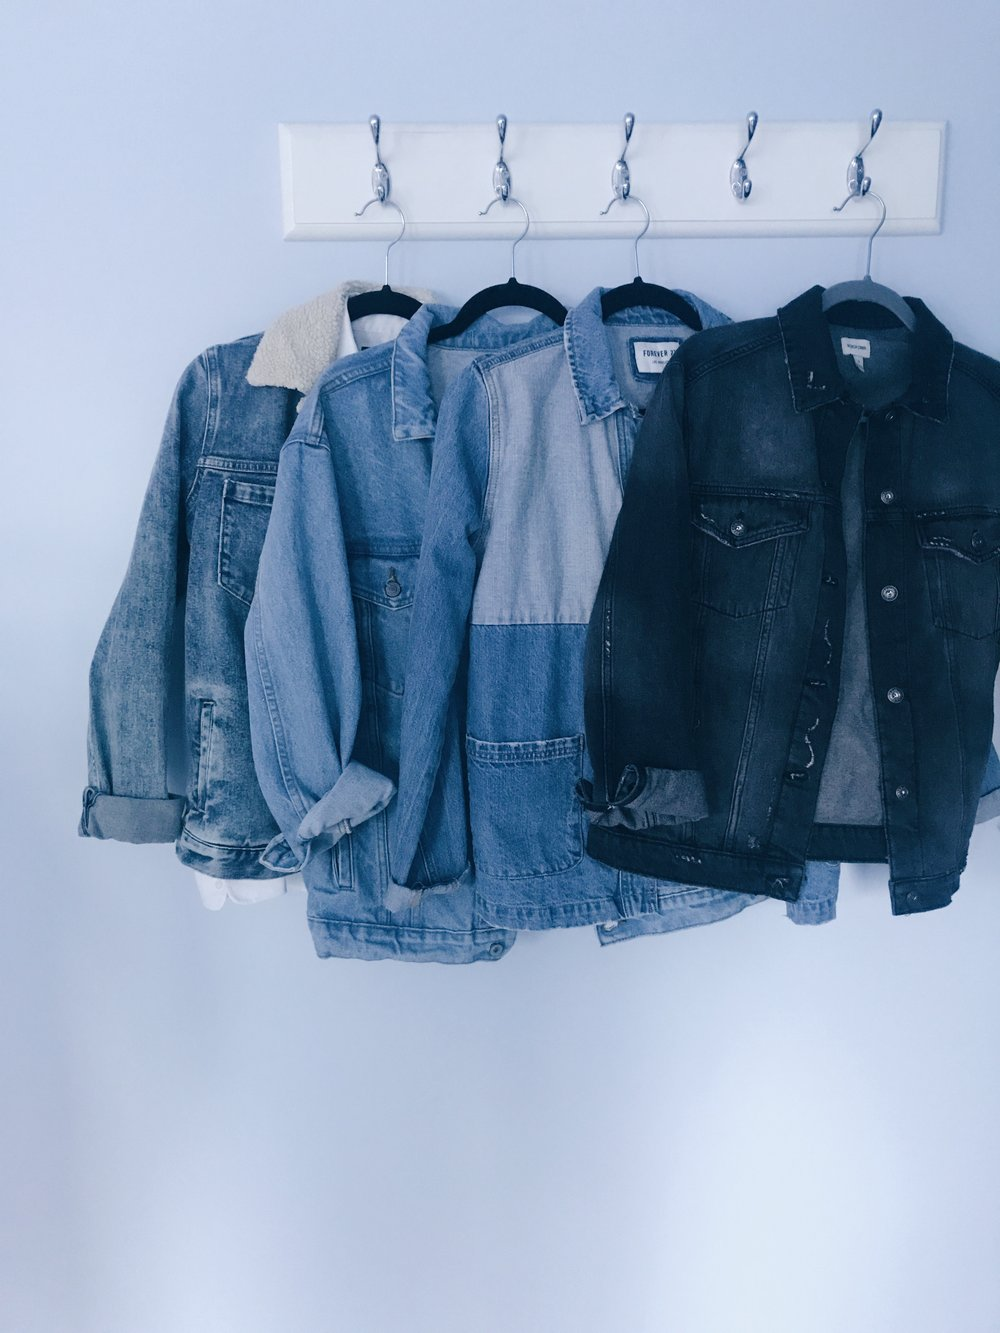 Jacket options. Even though I only show denim here, you could pick pretty much any material. Grab a pair of black jeans, slacks, corduroys, or tasteful leggings and you're good to go!